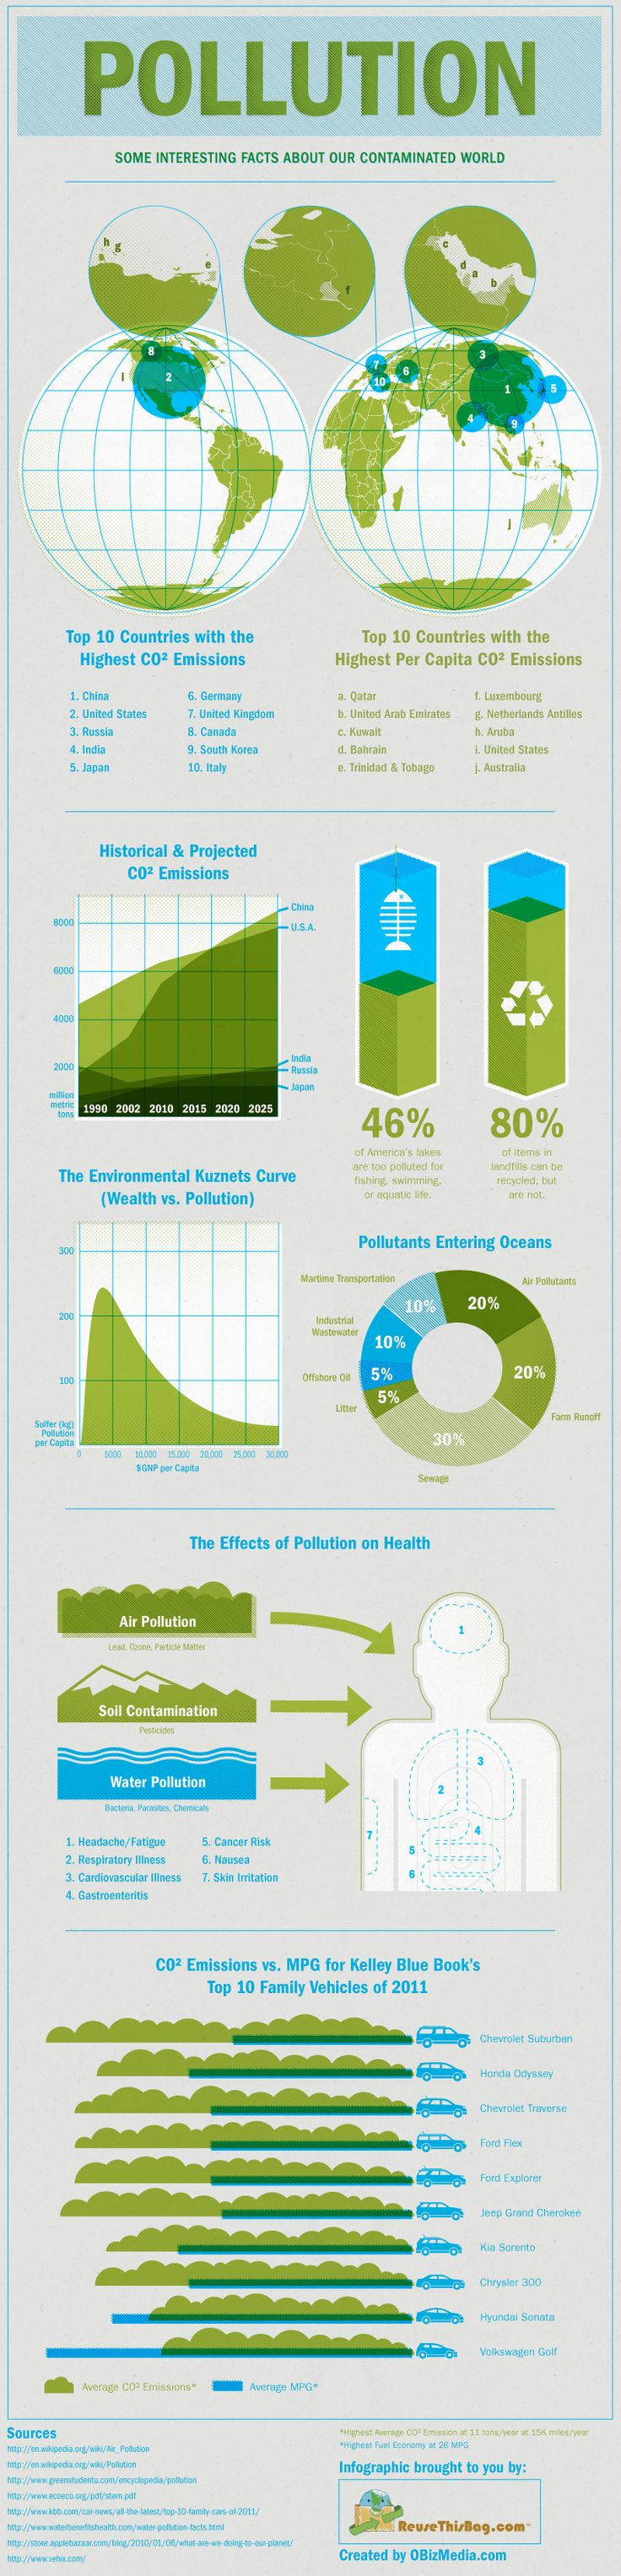 CO2 Emissions & Pollution | #infographics #environment